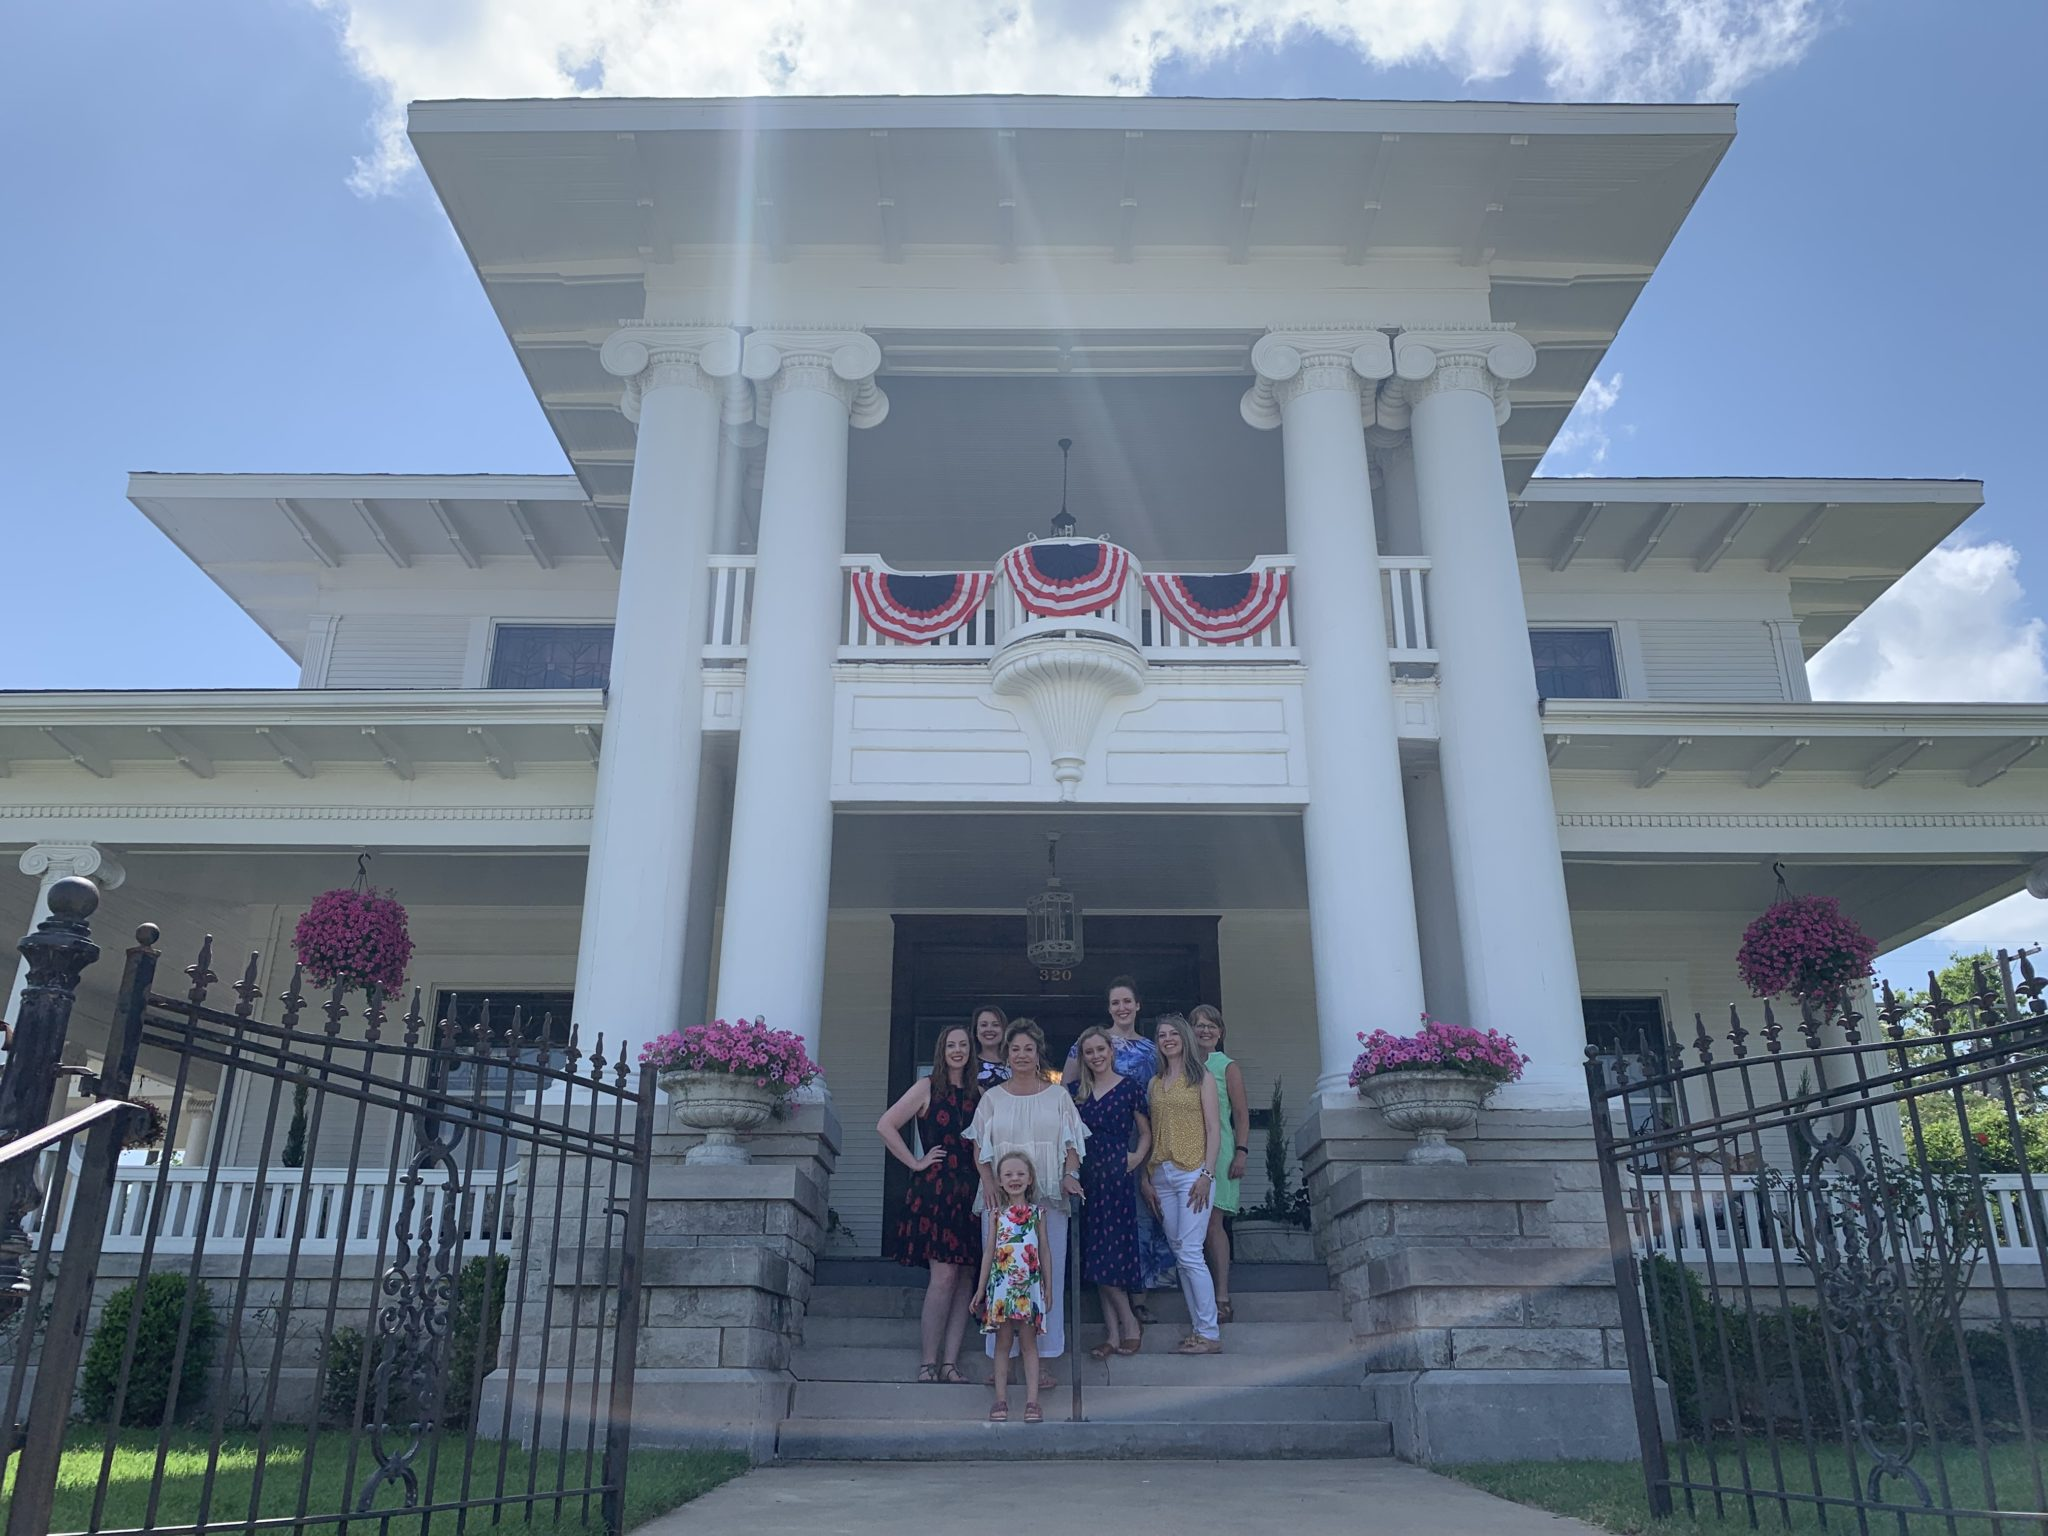 SeneGence members and executives announcing the purchase of the Burnett Mansion last June. Left to Right: Christin Slough, Amanda Chioto, Joni Rogers with Lily Slough, Heather Menke, Amanda Brown, Jessica Terrill, Vickie Beyer.